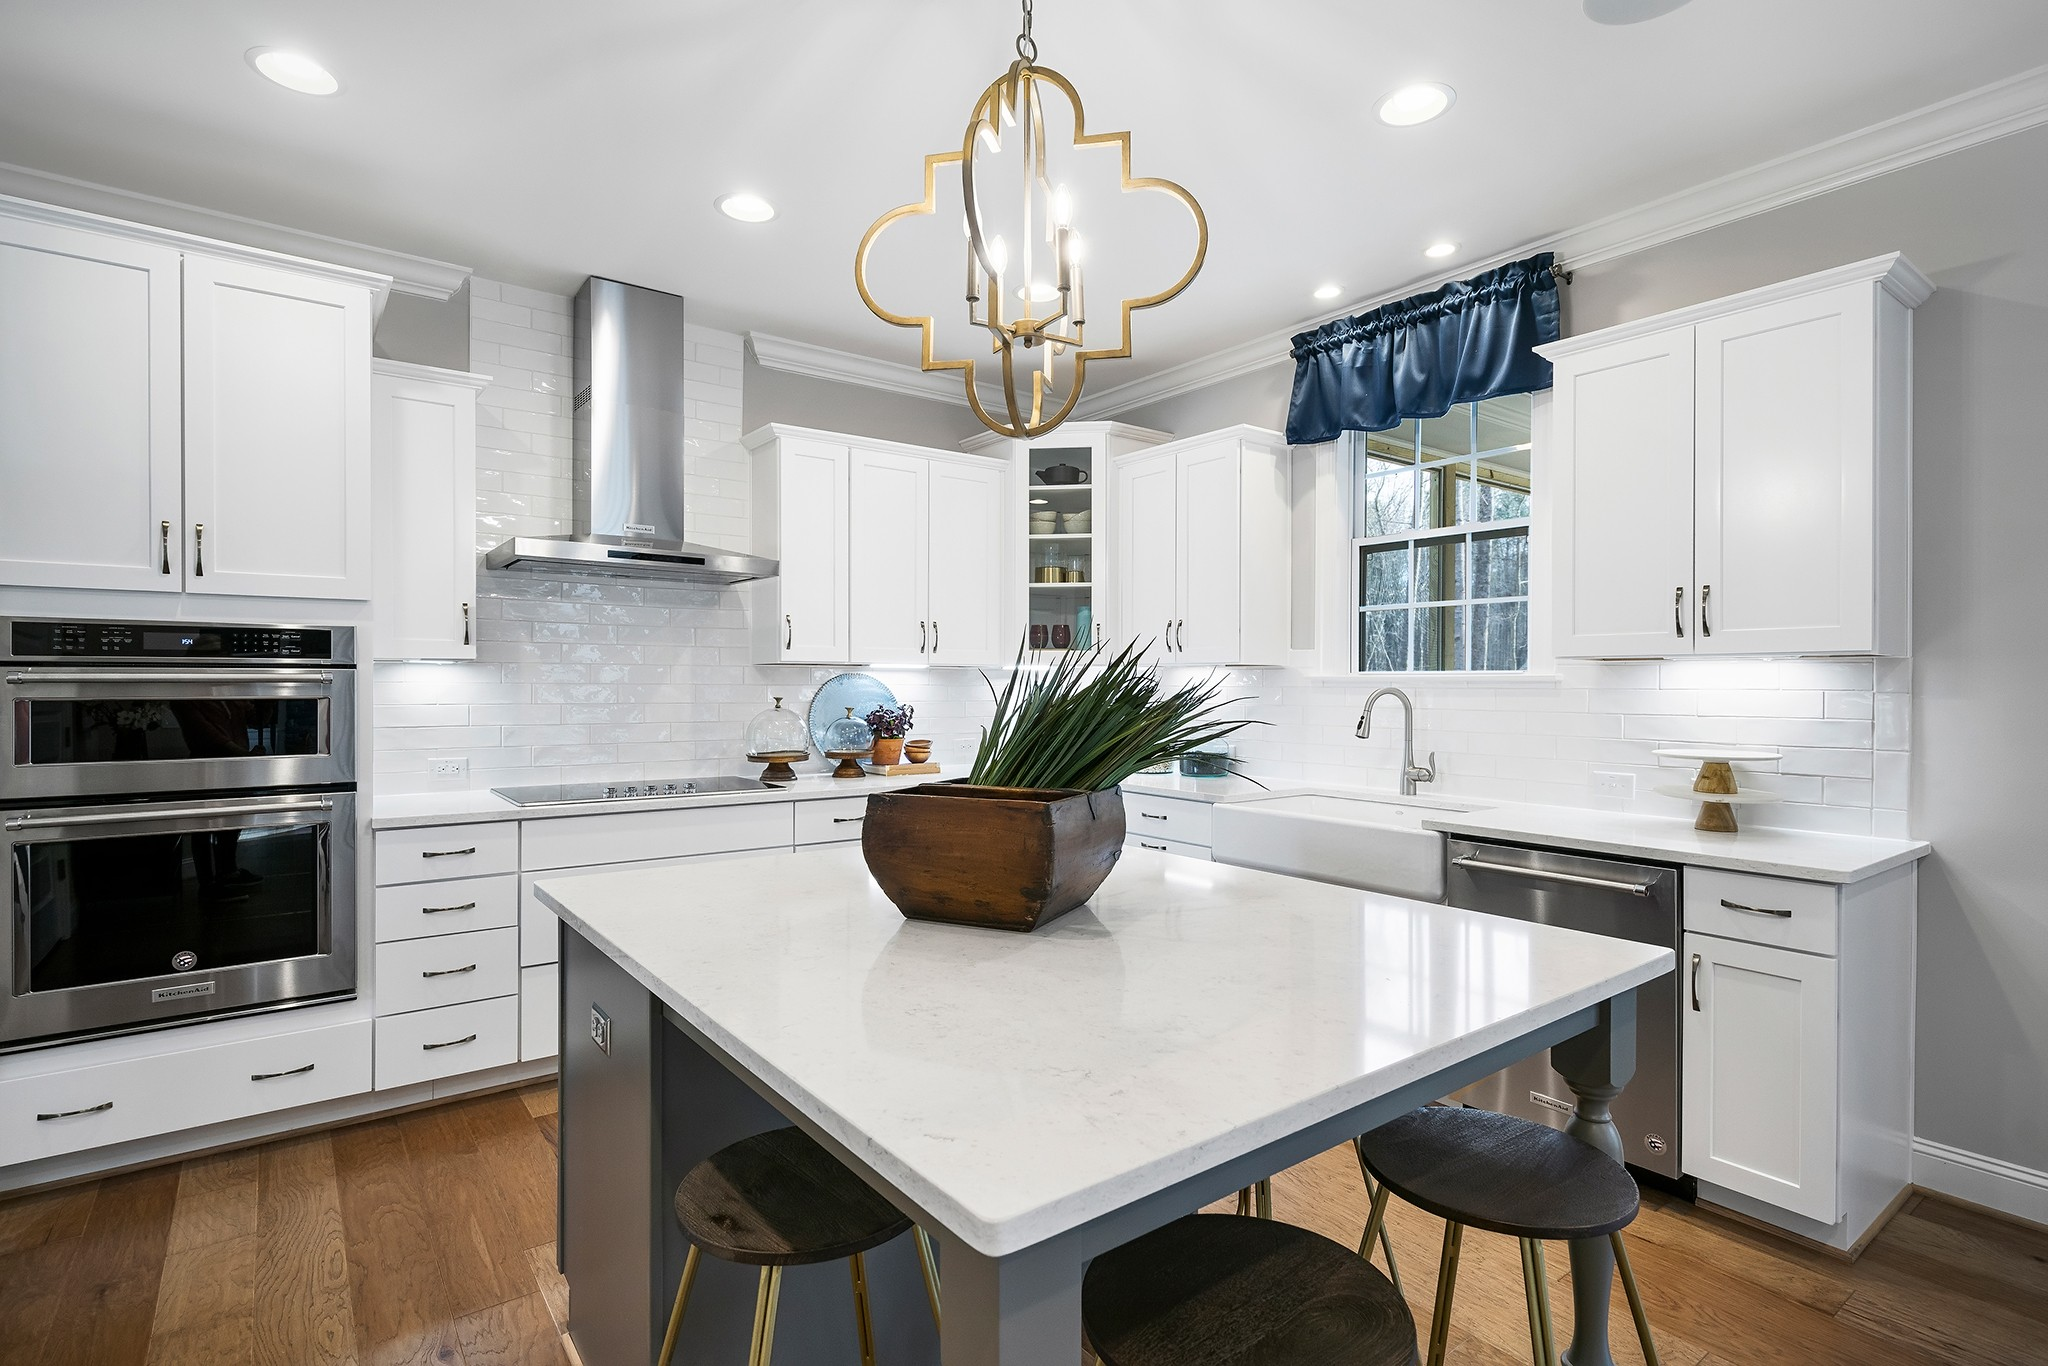 Ballentine Place, The Edenton Model, Royal Oaks a Division of Mattamy Homes, Gourmet Kitchen